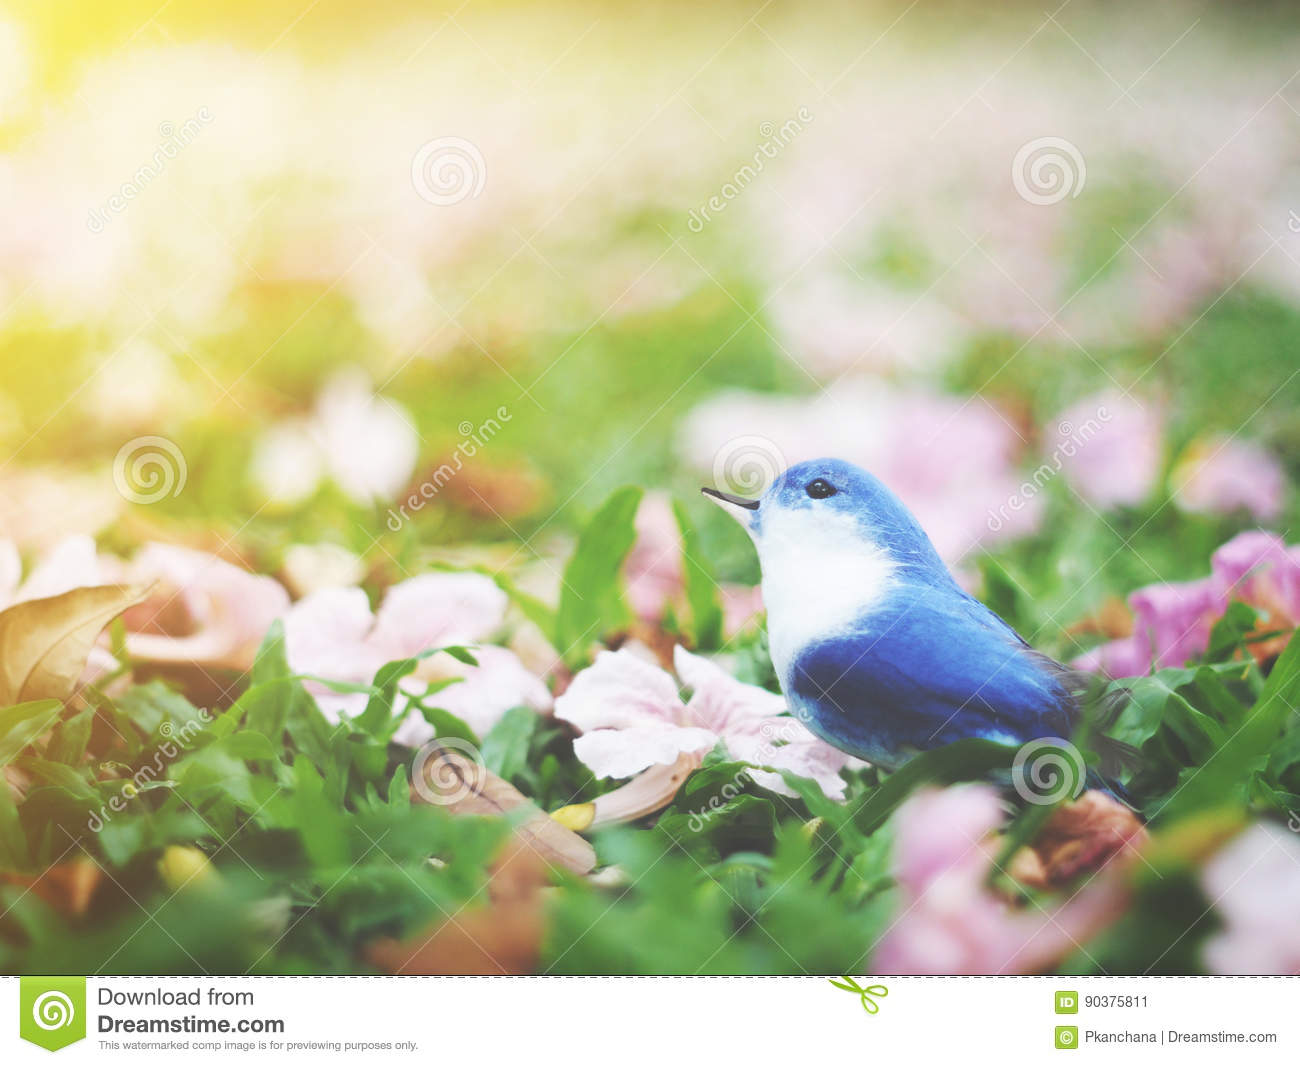 Small Blue And White Bird On Grass Ground With Pink Flowers Fall